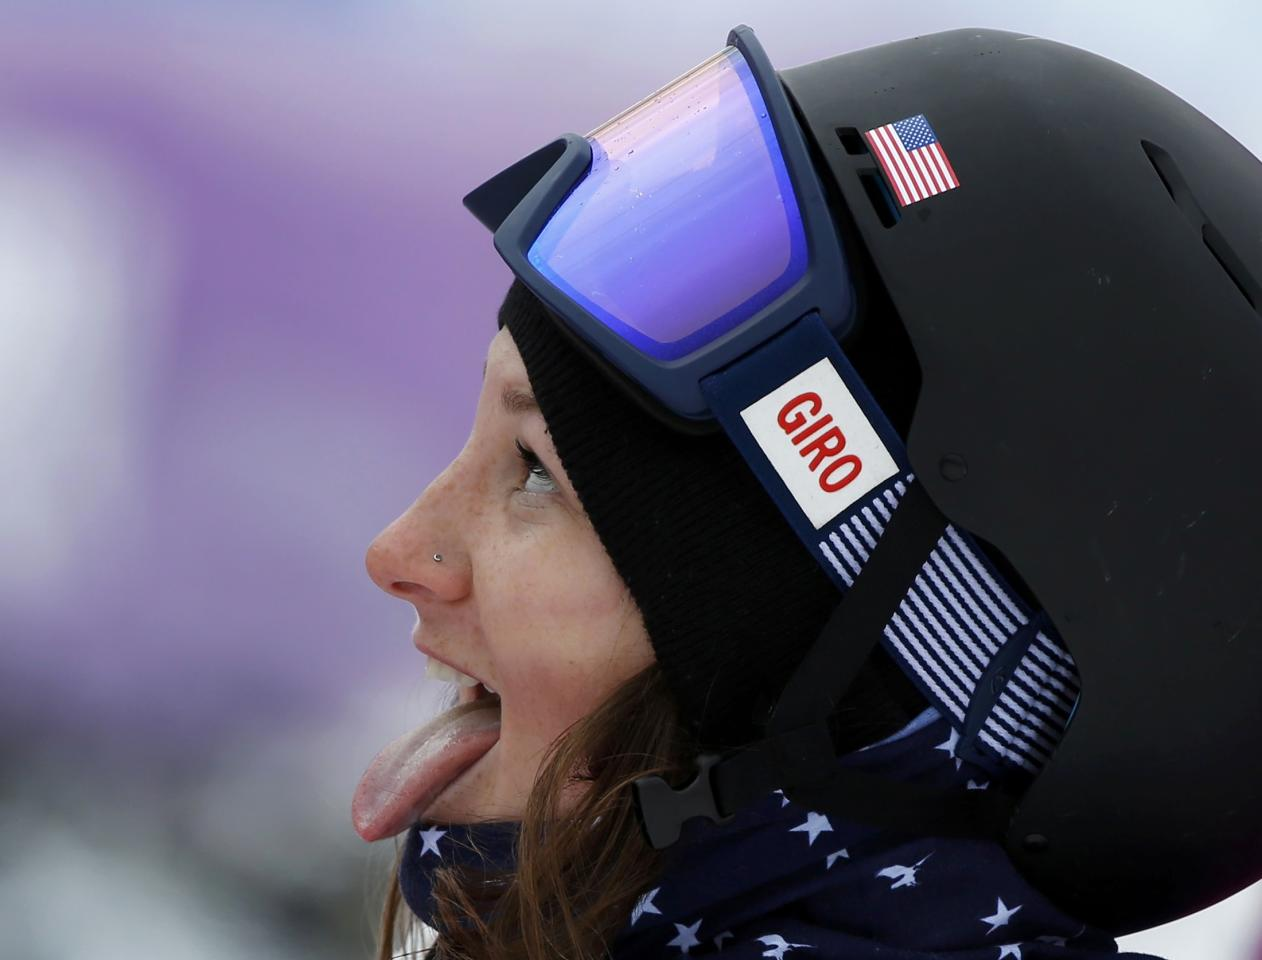 REFILE - CORRECTING DATE Devin Logan of the U.S. reacts in the finish area during the women's freestyle skiing slopestyle finals at the 2014 Sochi Winter Olympic Games in Rosa Khutor February 11, 2014. REUTERS/Mike Blake (RUSSIA - Tags: SPORT OLYMPICS SPORT SKIING)